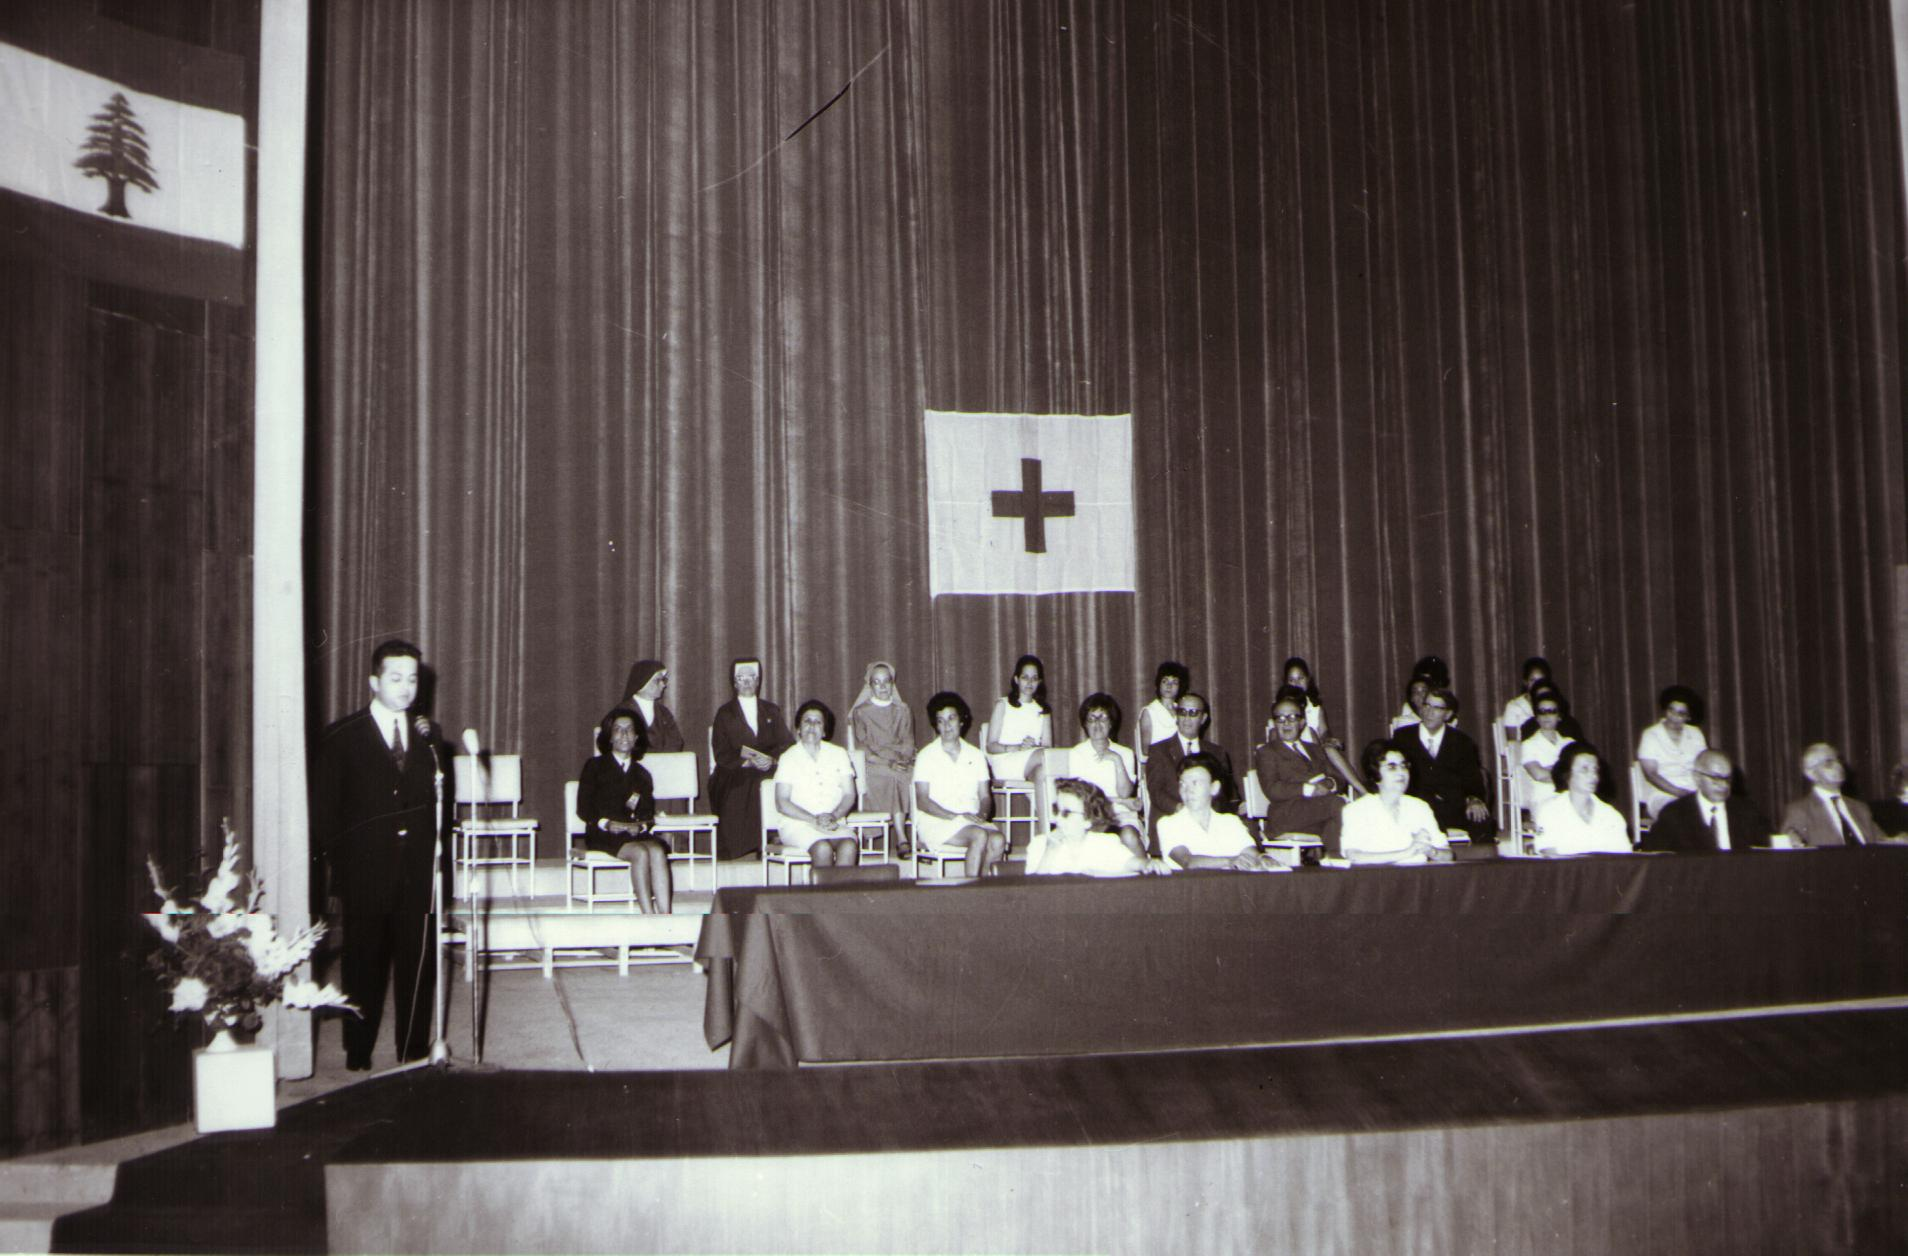 addressingredcrossgeneralassembly2.jpg